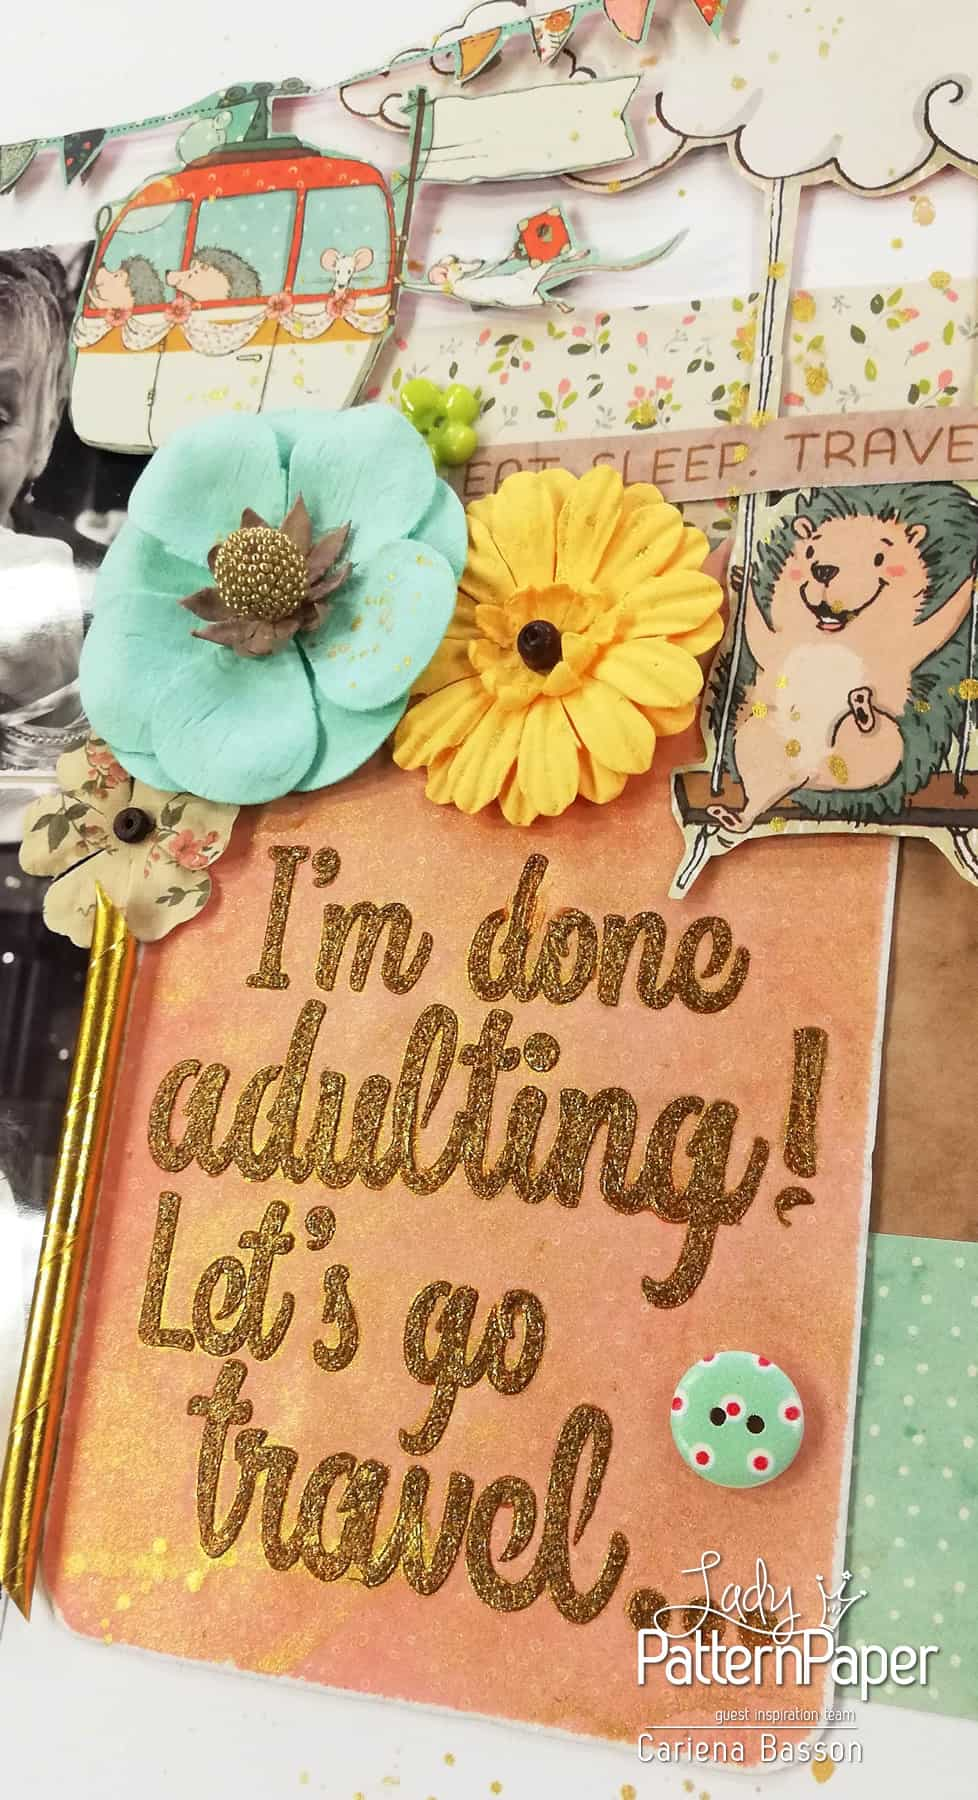 Travel Buddies - Road Tripping - Done Adulting